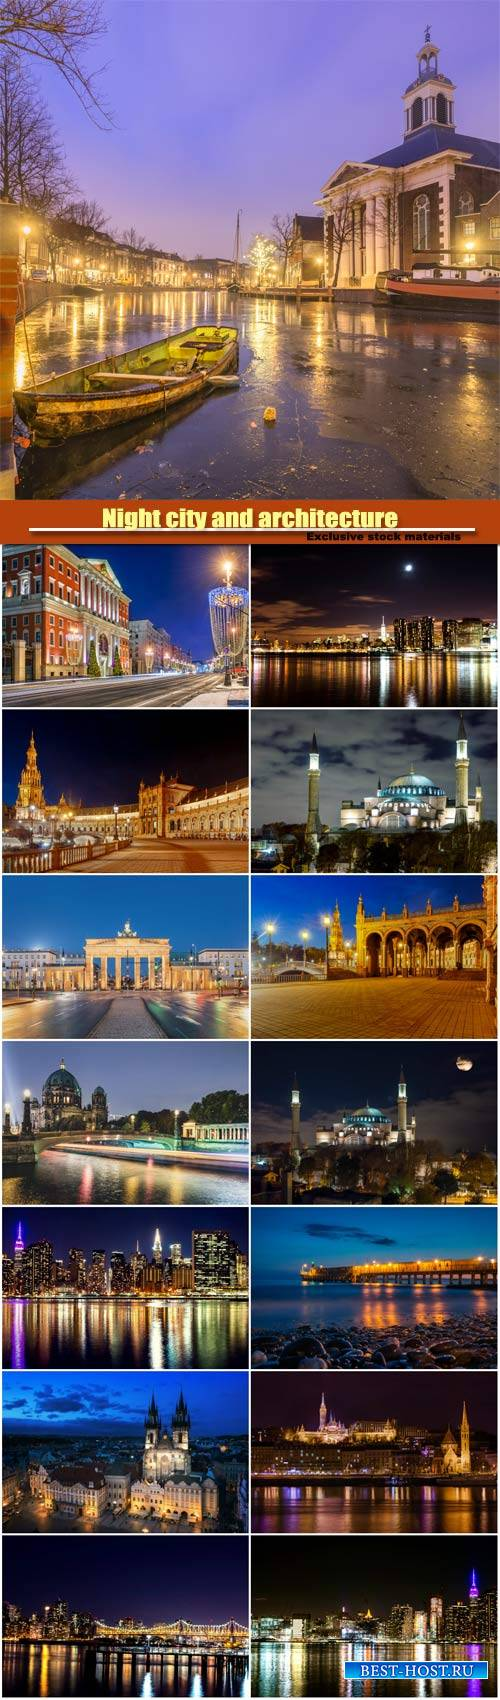 Night city and architecture around the world